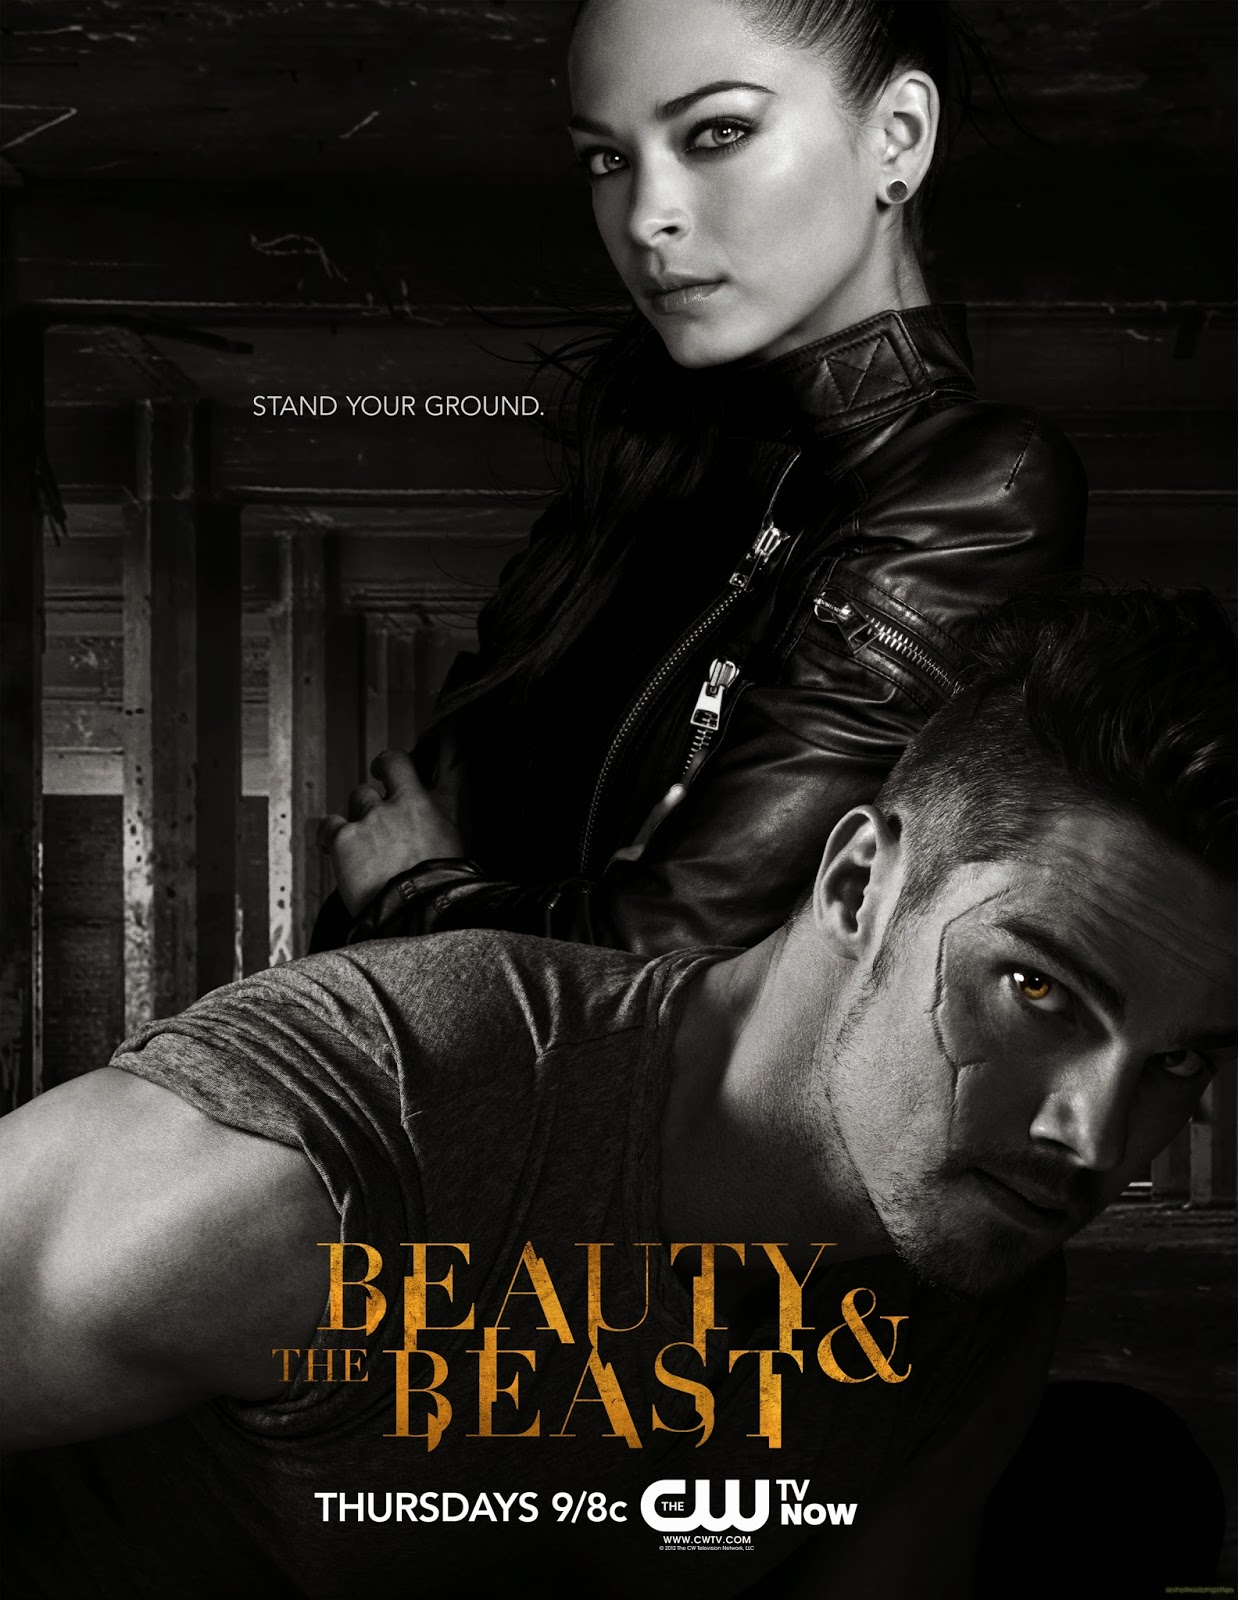 The two beauty and the beast 8